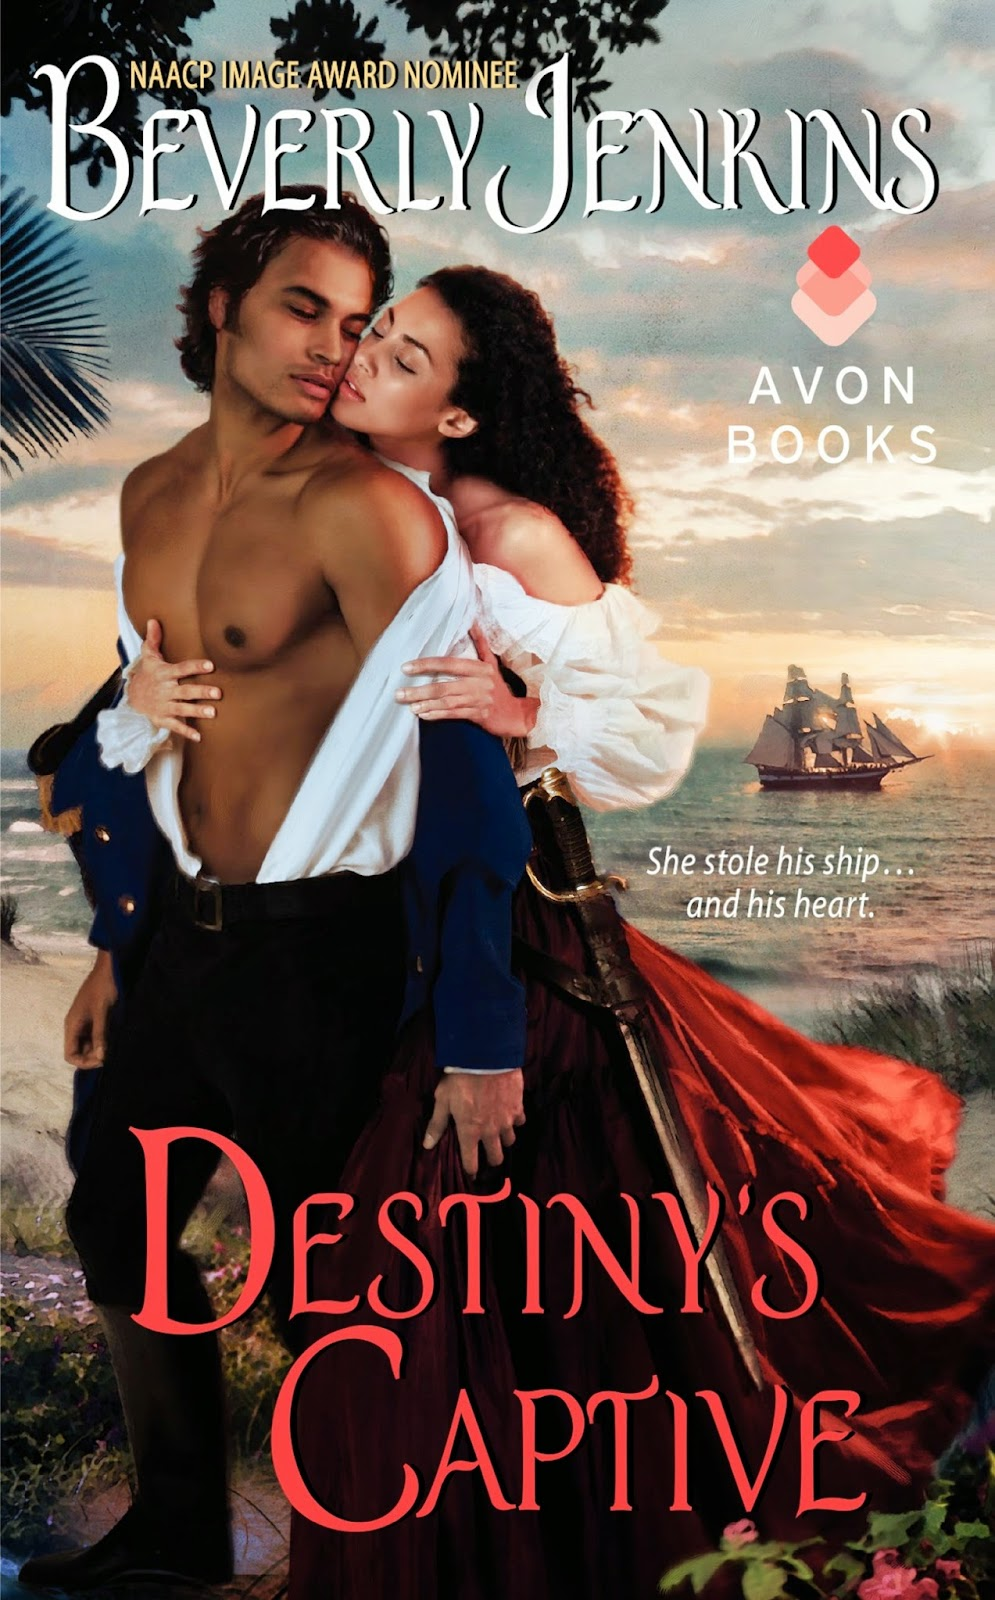 http://www.amazon.com/Destinys-Captive-Beverly-Jenkins-ebook/dp/B00HPWTG7Y/ref=asap_B000APIFDO_1_1?s=books&ie=UTF8&qid=1417654902&sr=1-1